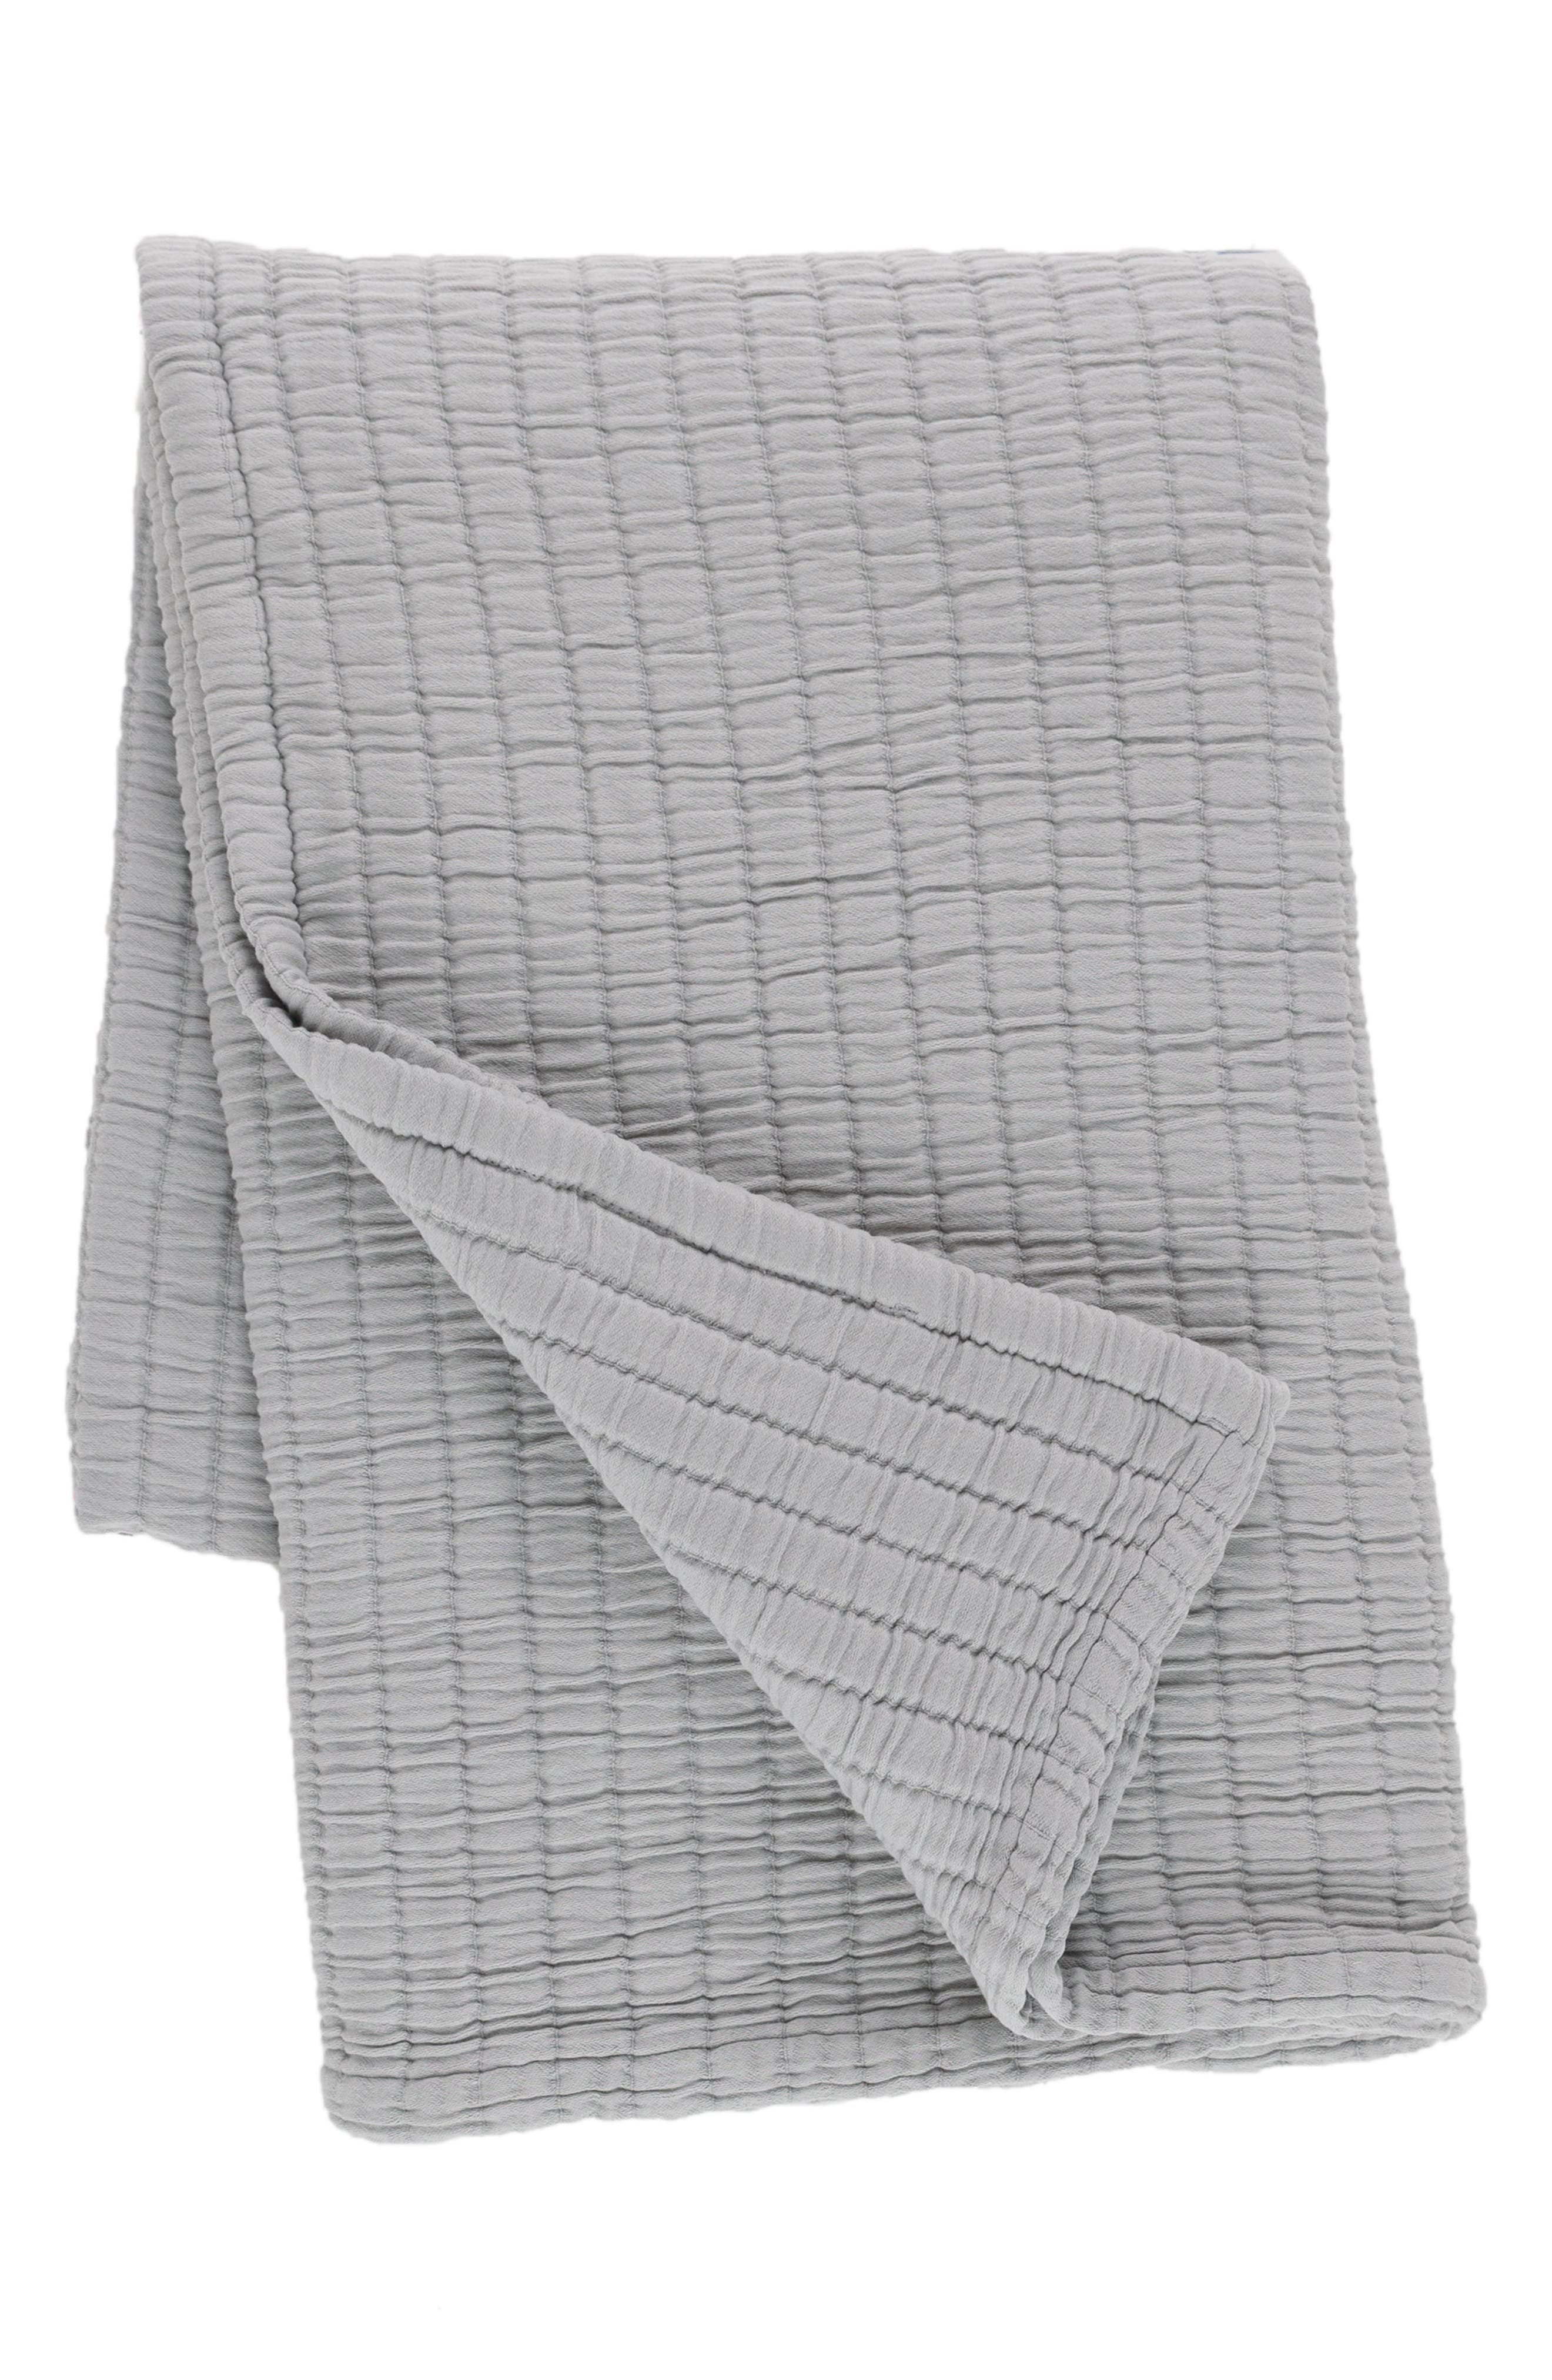 Matelassé Throw,                         Main,                         color, GREY